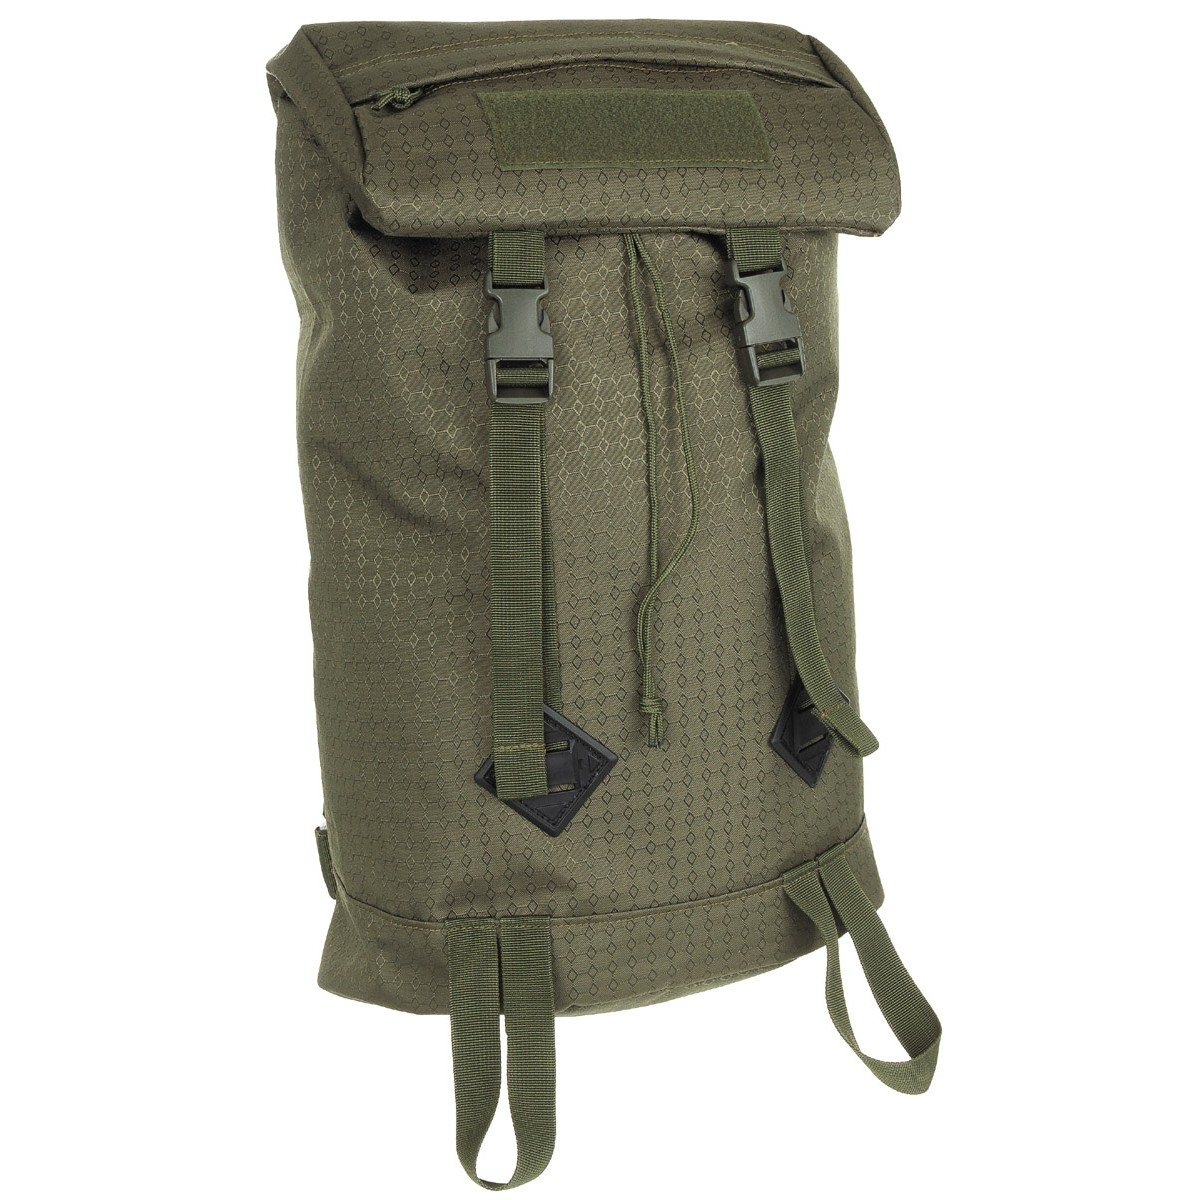 "Stylish Outdoor City Backpack Bag ""Bote"" OctaTac 25L - Green"